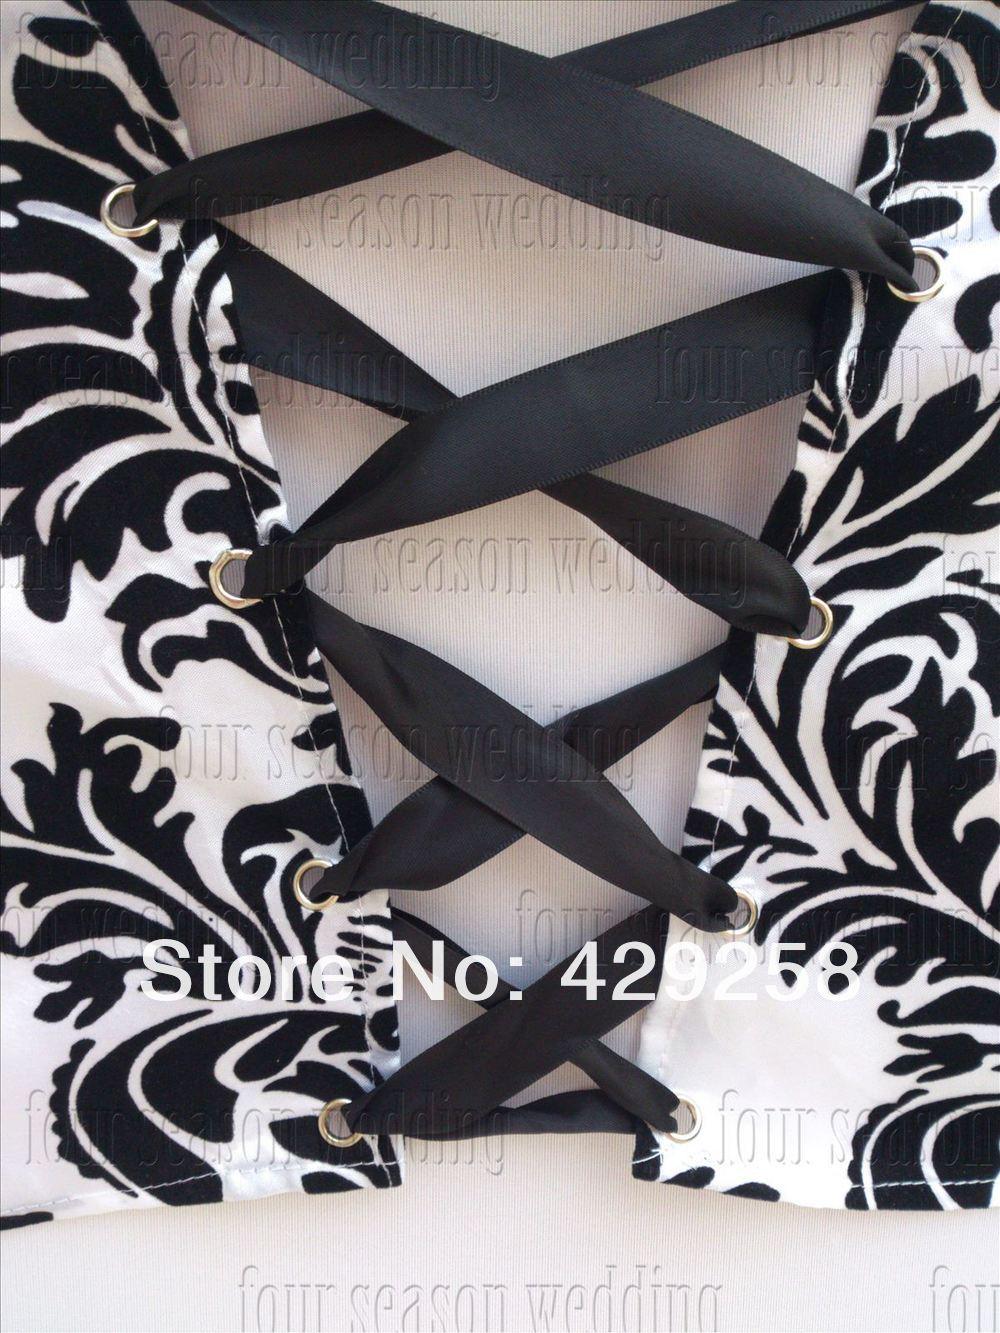 Stupendous Us 180 0 Free Shipping 100Pcs White And Black Flocking Taffeta Chair Cover Sash Also Call Elegance Damask Corset Chair Sash In Sashes From Home Download Free Architecture Designs Rallybritishbridgeorg